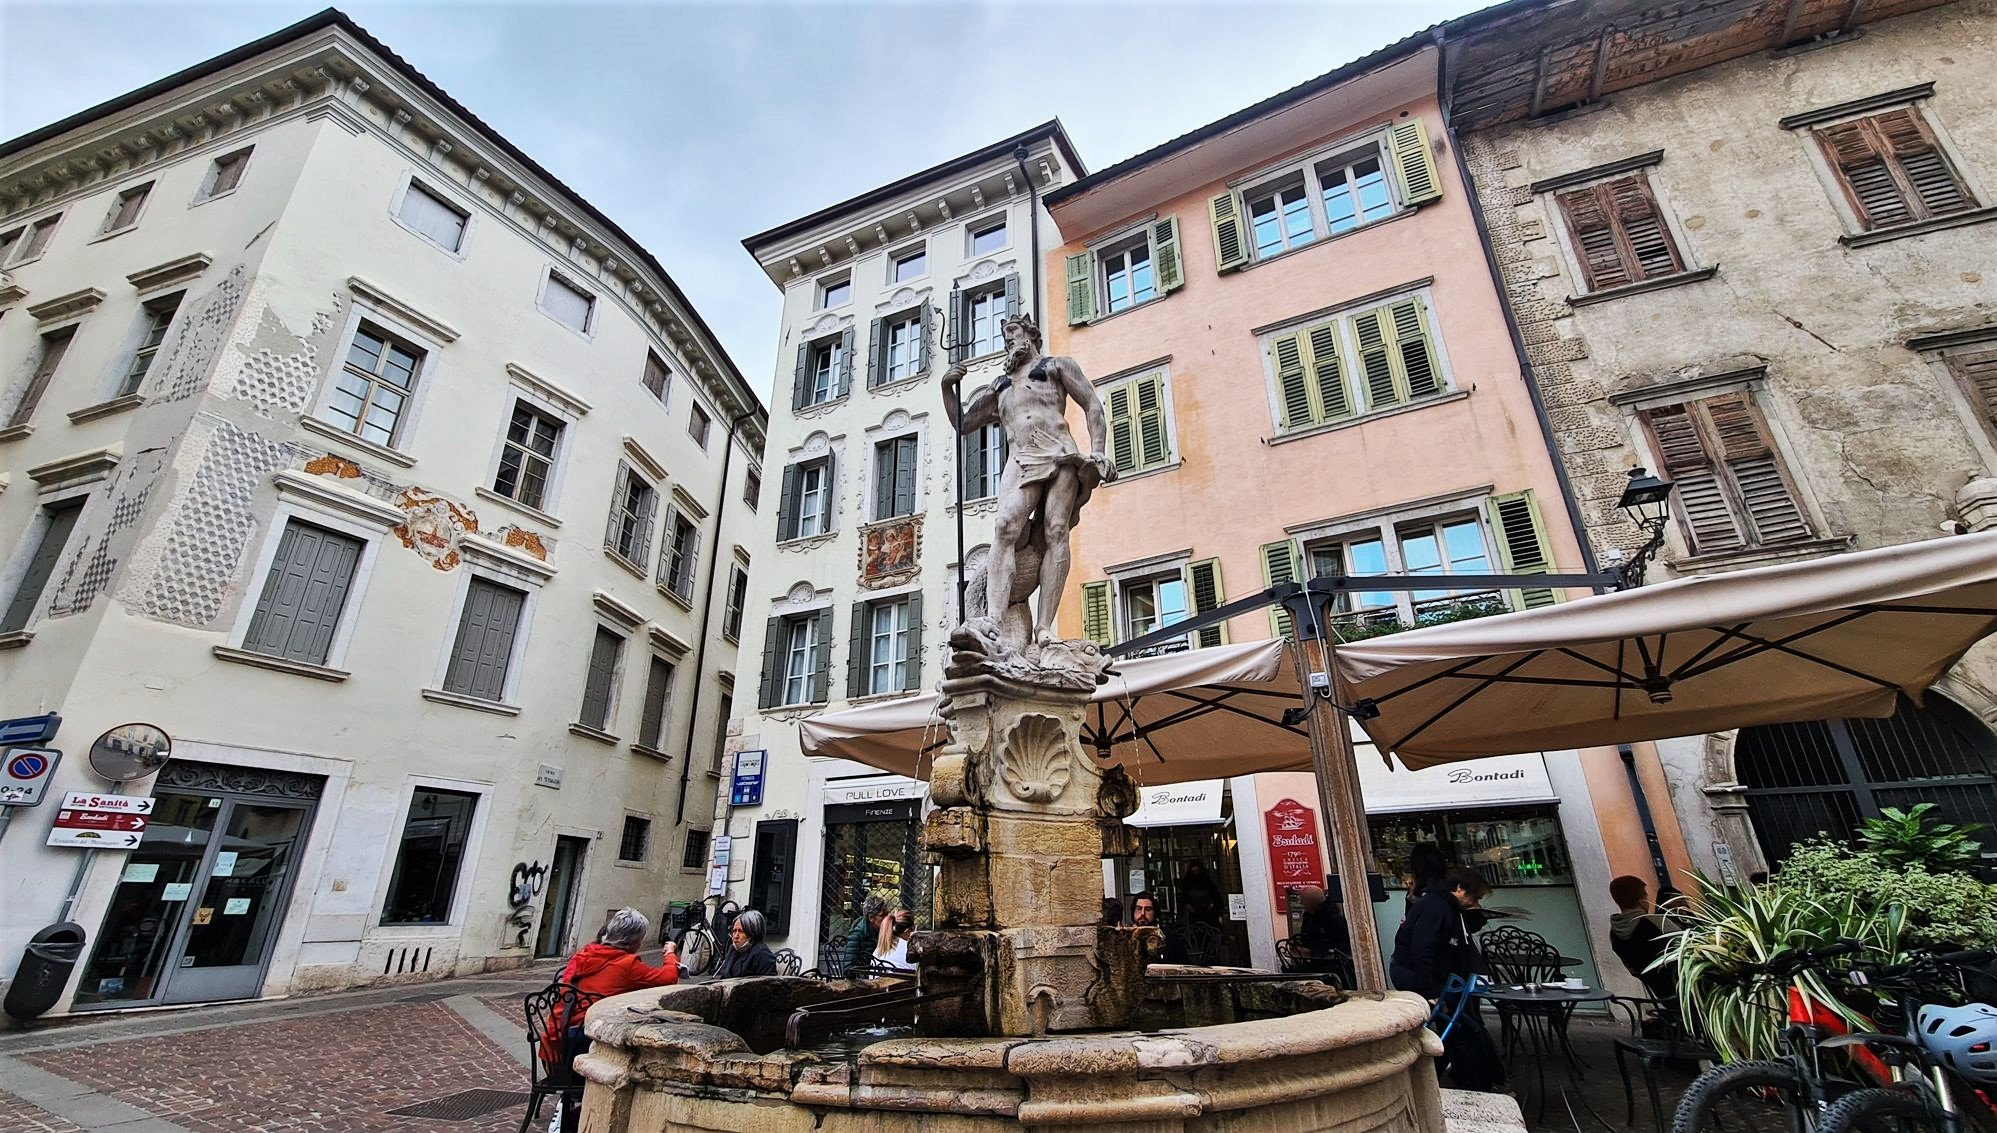 Piazza Cesare Battisti Rovereto